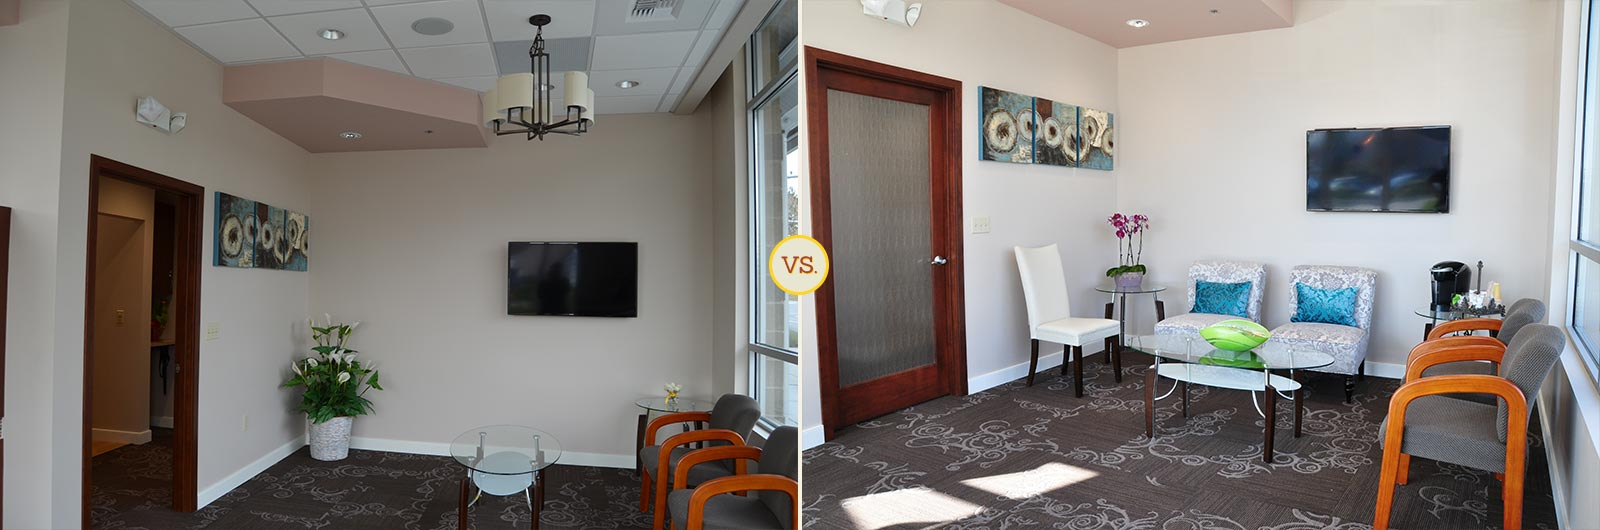 Side-by-side comparison of dental practice lobby photos